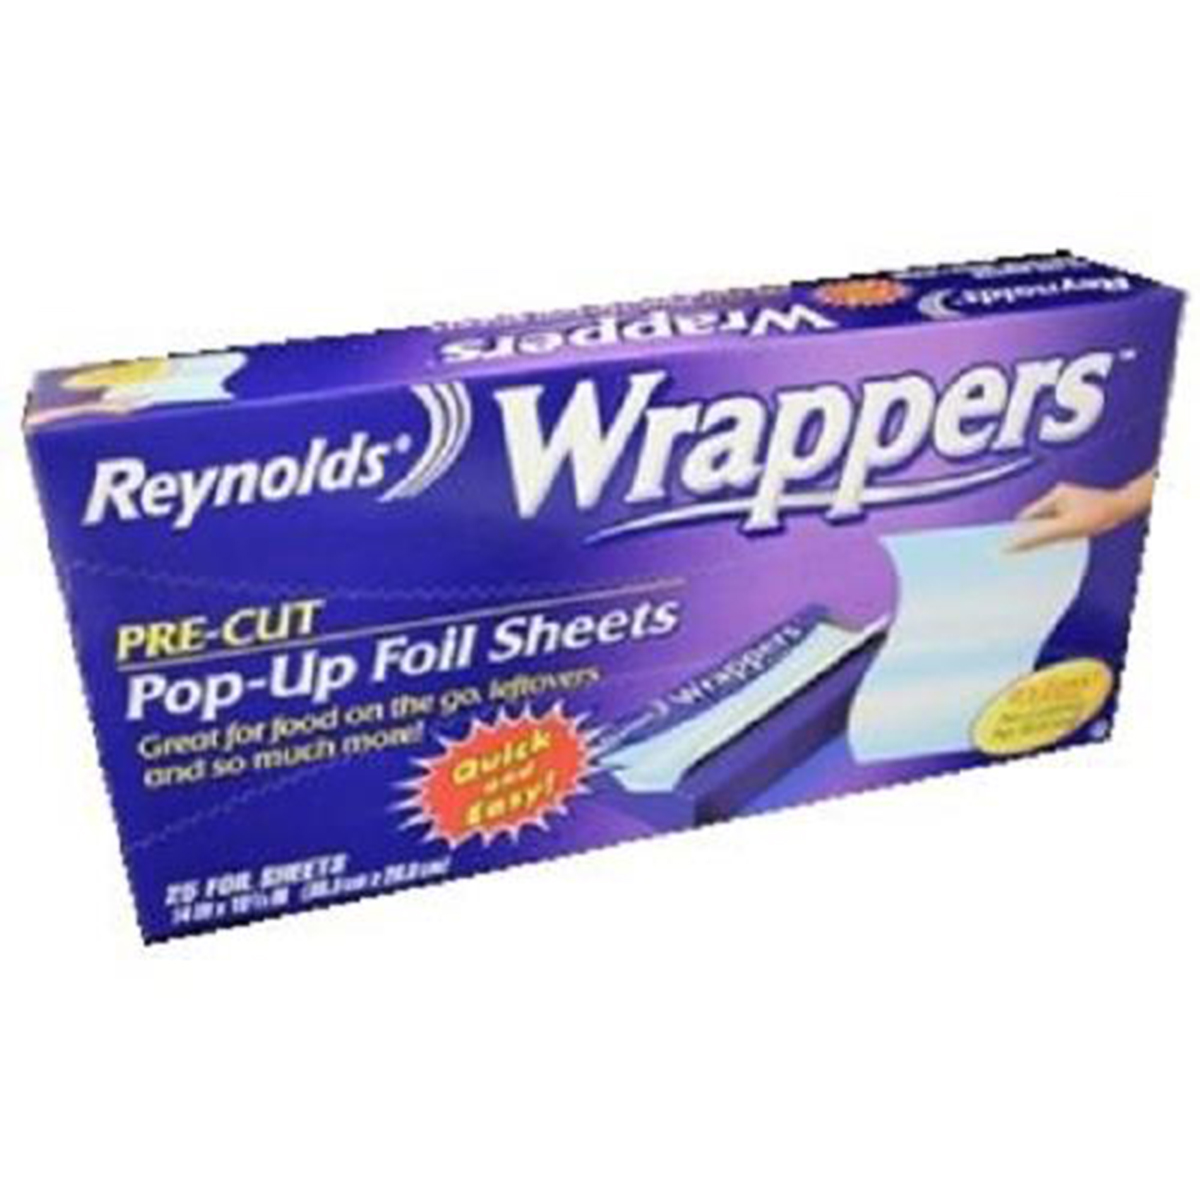 Product Of Reynolds, Wrappers Pre-Cut Foil Sheets, Count 1 - Aluminum Foil Paper / Grab Varieties & Flavors